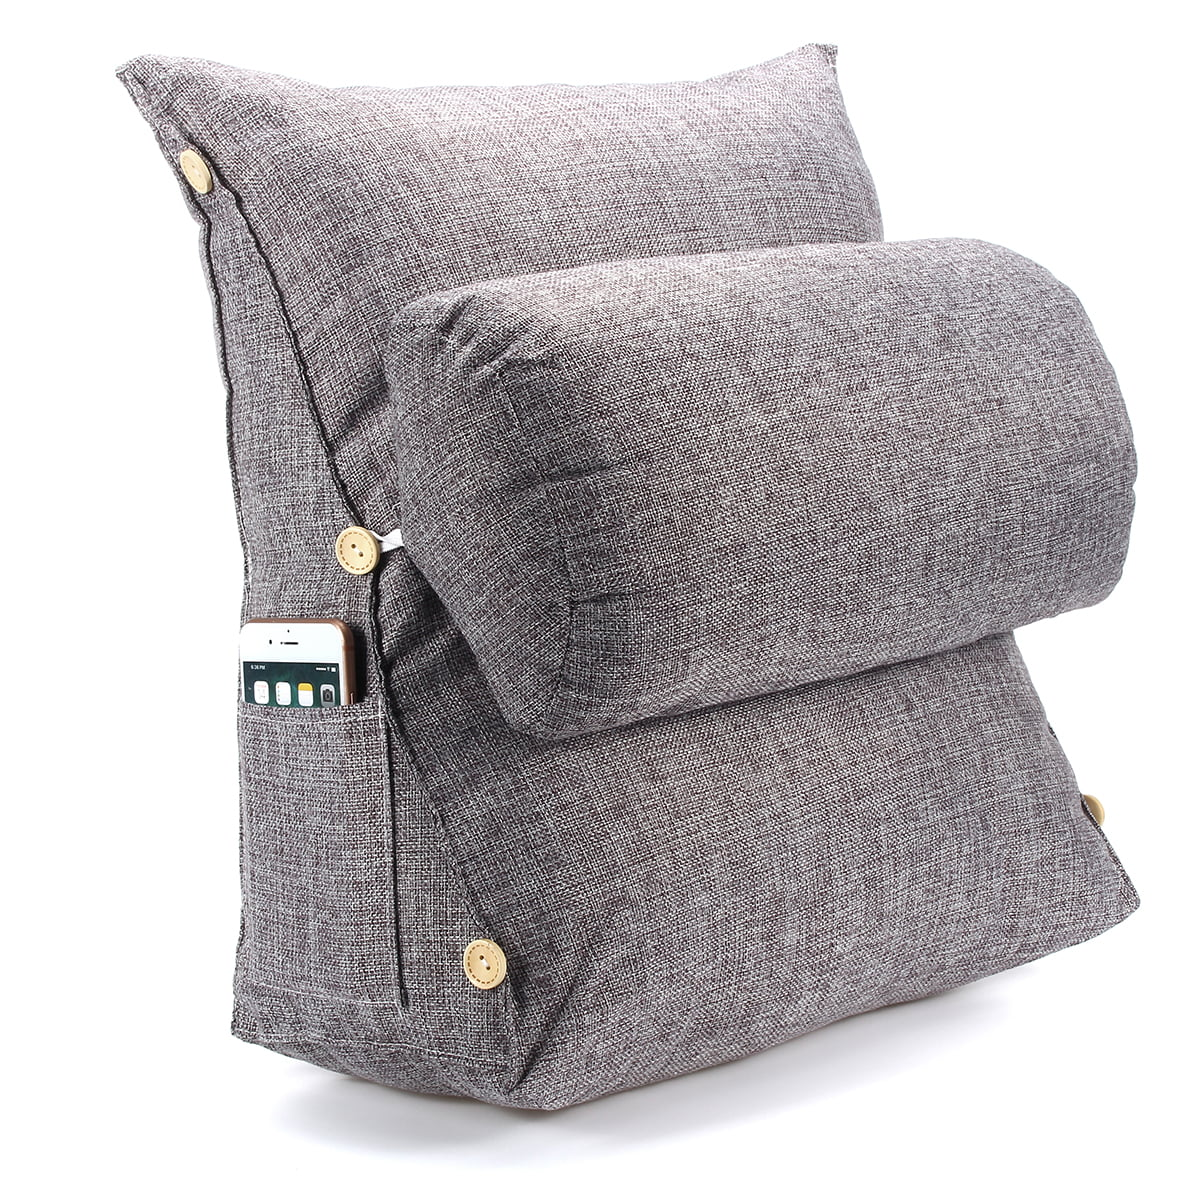 adjustable wedge cotton back cushion pillow office sofa bed backrest waist support smoke grey size 18 x18 x8